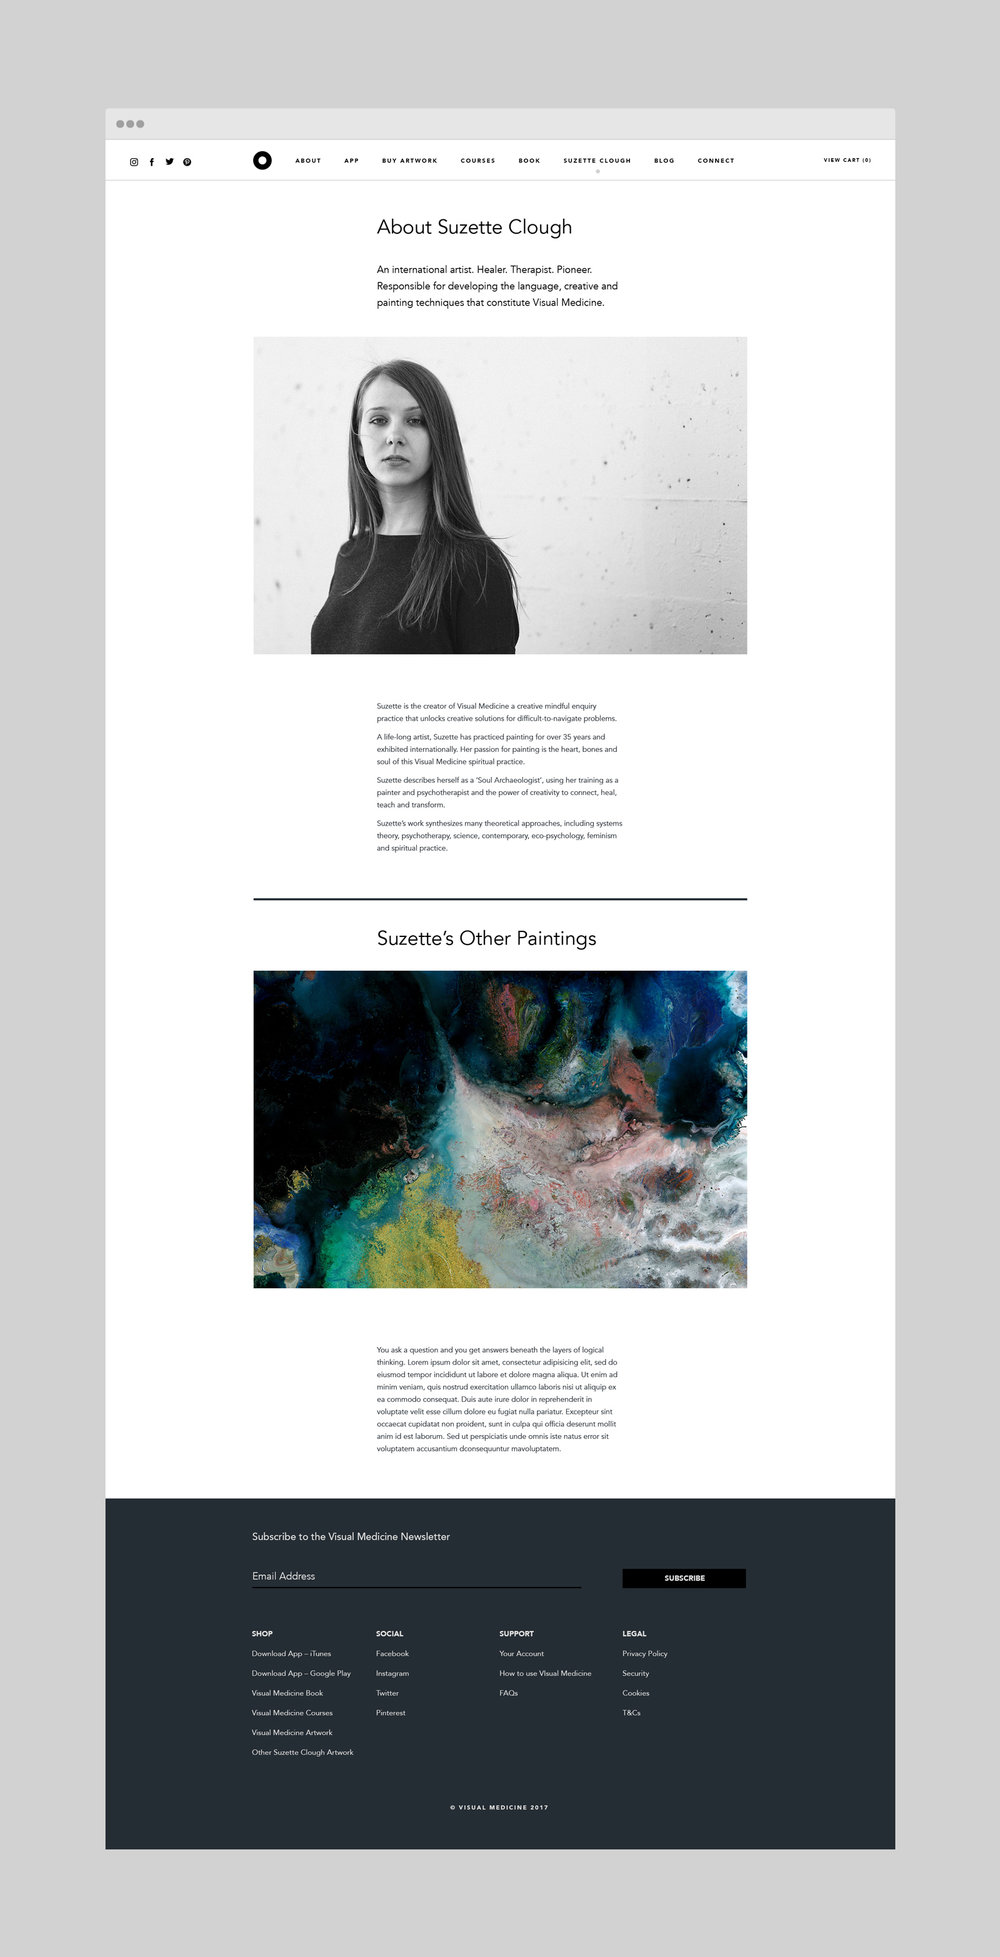 Visual-Medicine-Website-by-ALSO-Agency-About-Suzette-1.jpg